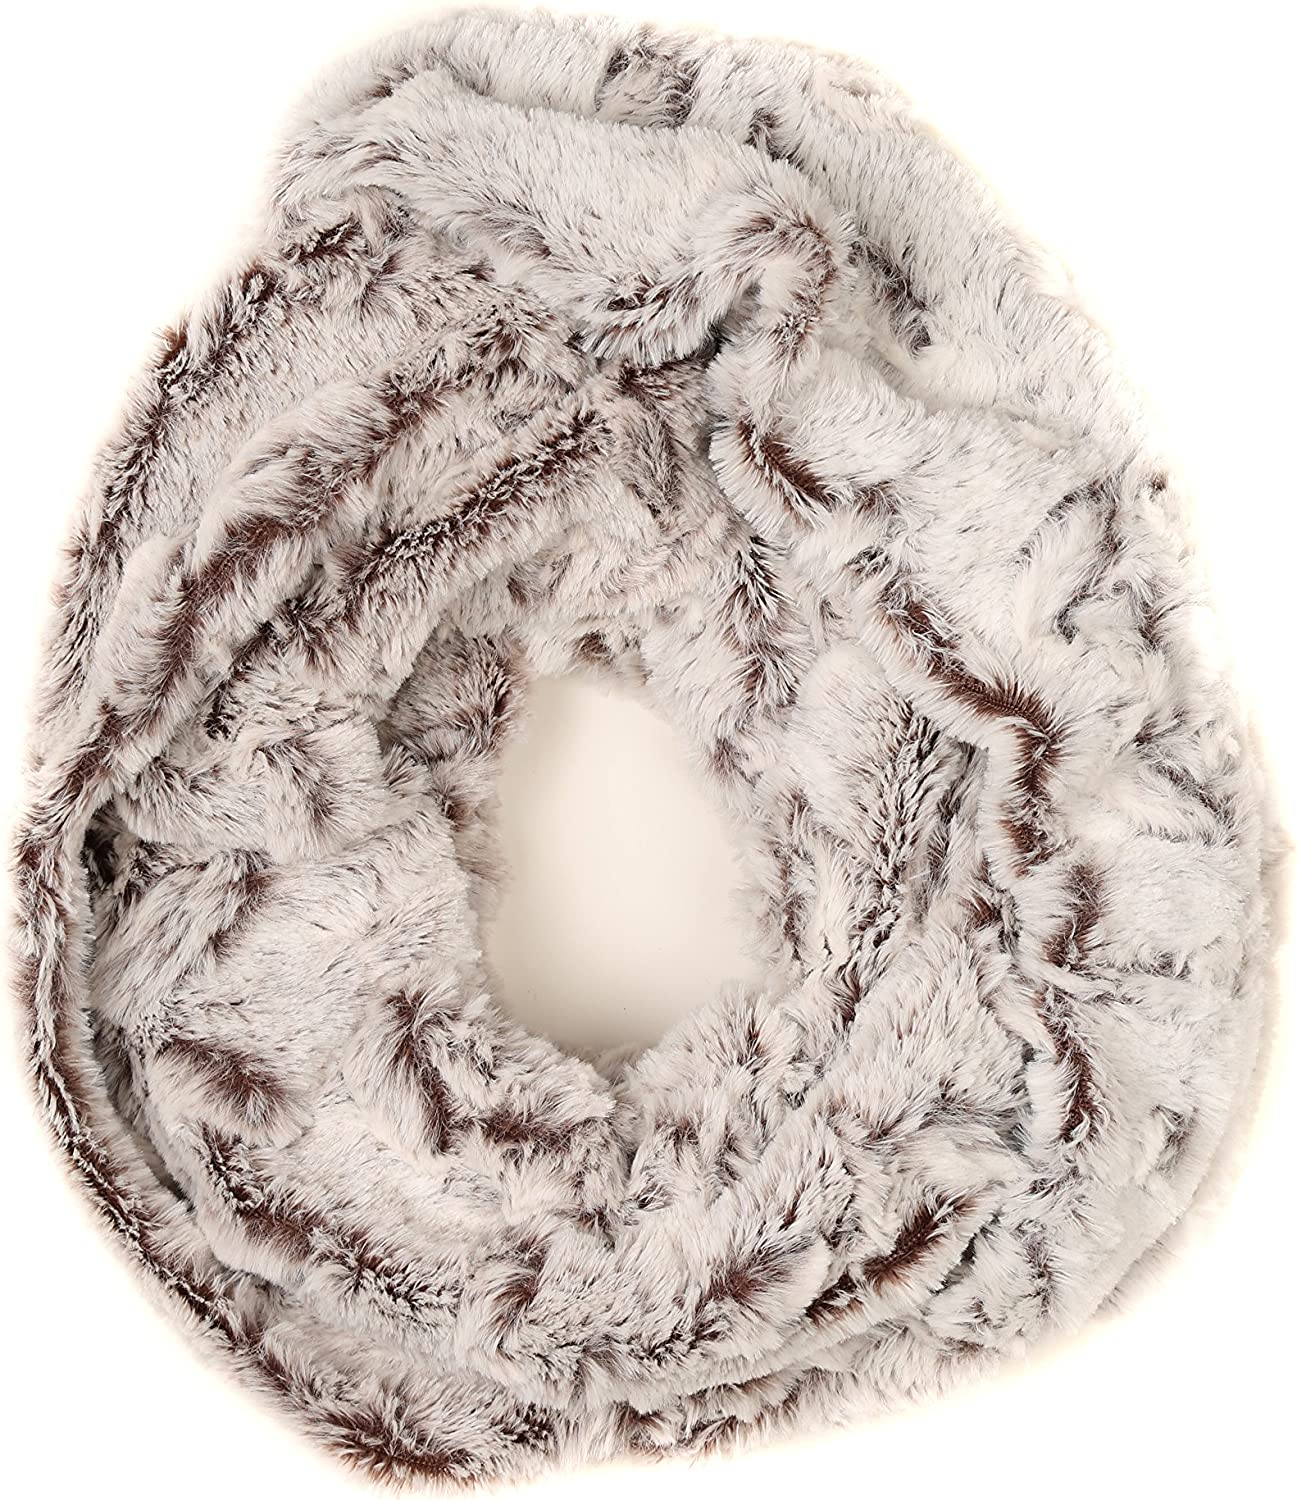 Sakkas Abhy Soft Free shipping on High quality posting reviews Fall Winter Wrap Scarf Infinity Furry